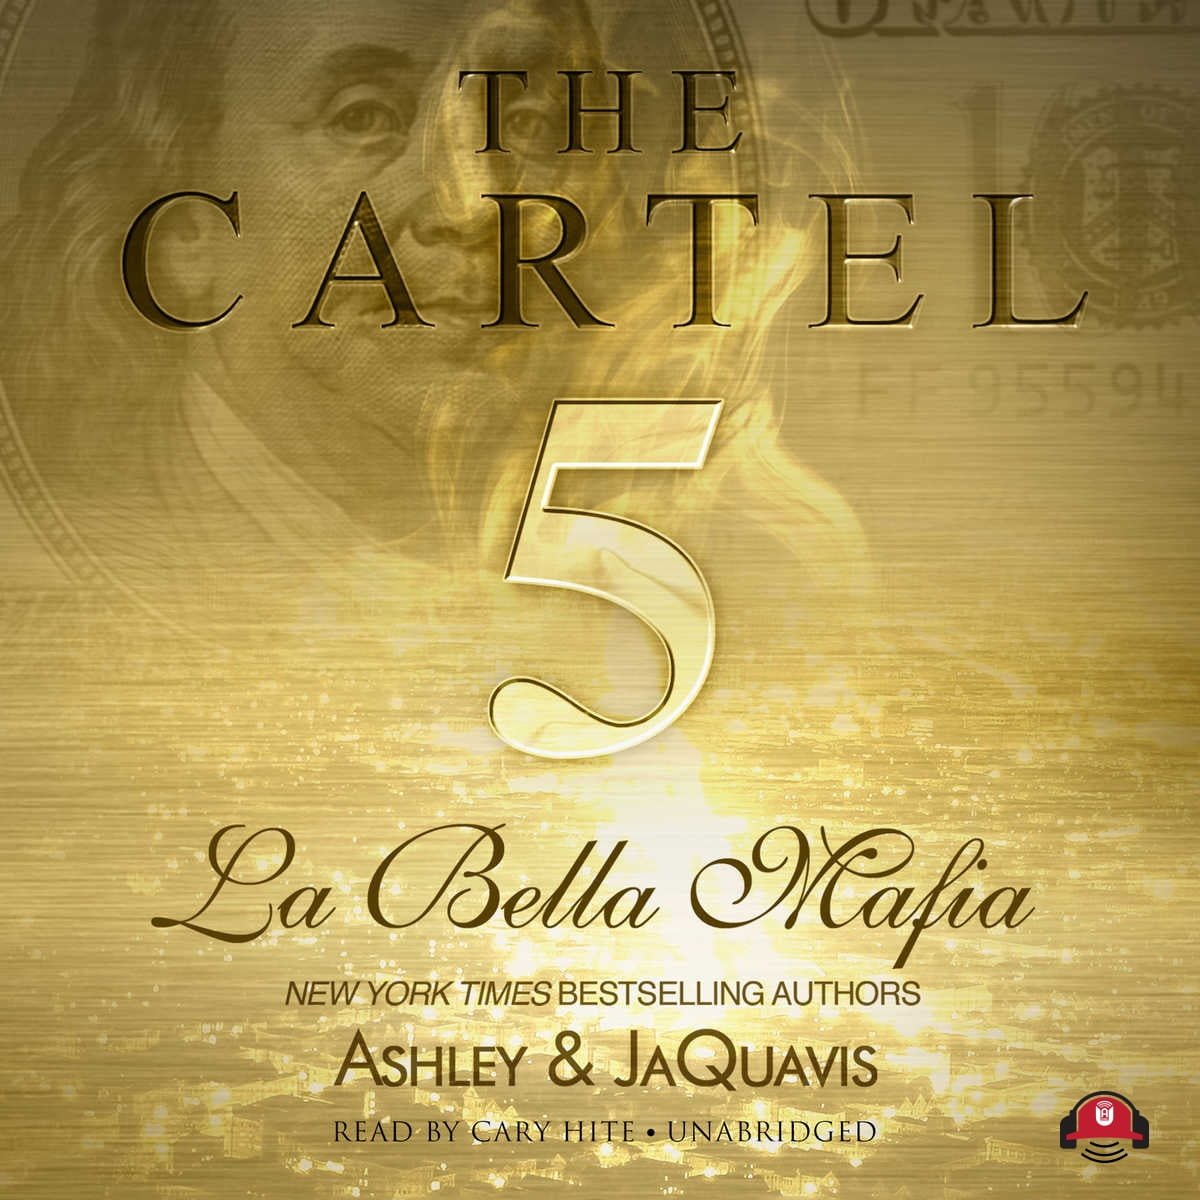 The cartel 5 audiobook by ashley jaquavis 9781624609862 the cartel 5 audiobook by ashley jaquavis 9781624609862 rakuten kobo fandeluxe Image collections